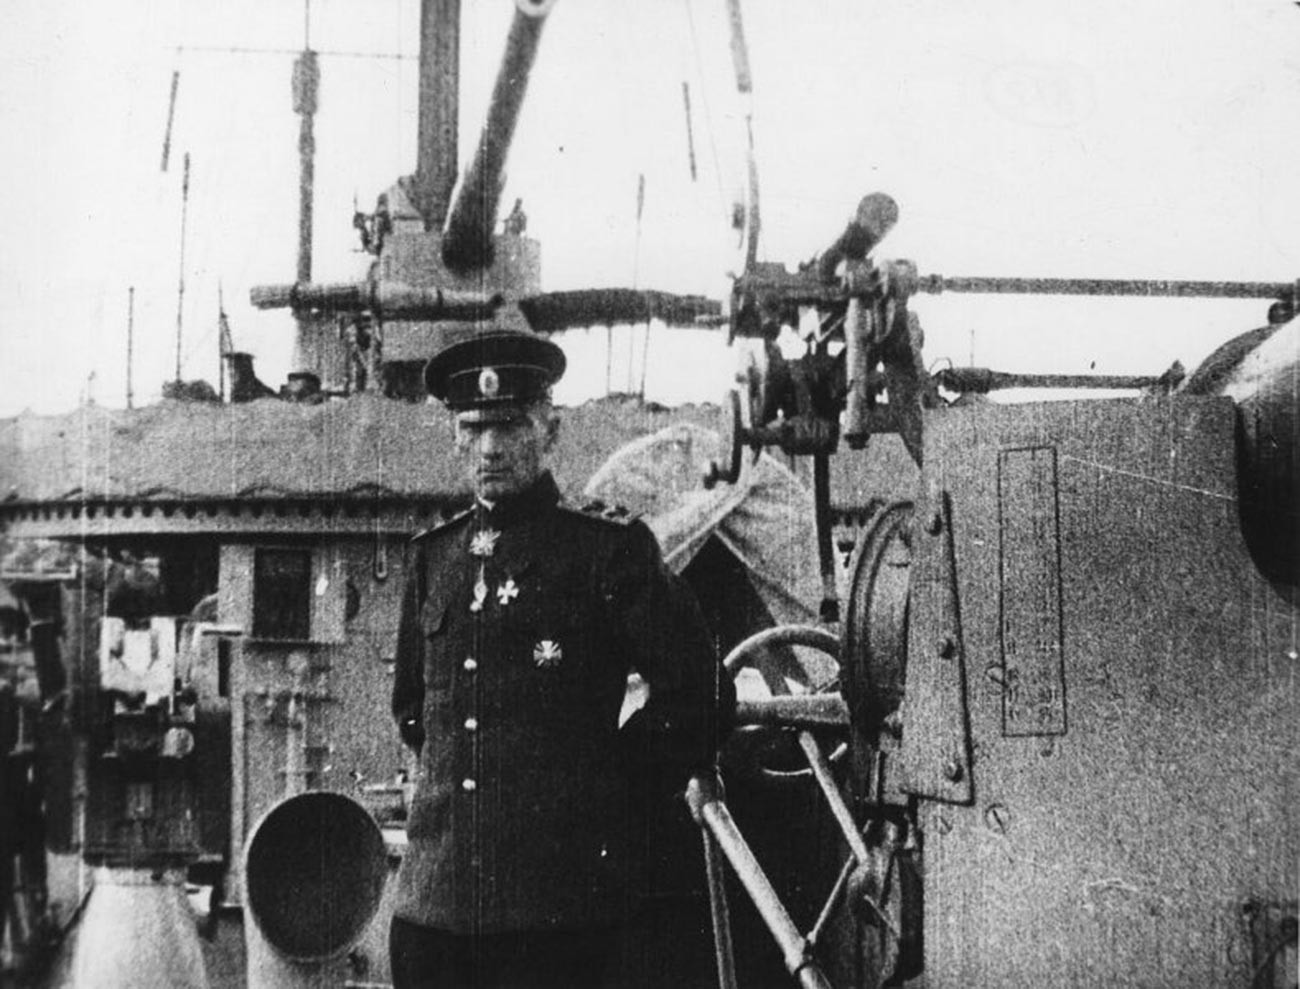 Alexander Kolchak as Black Sea Fleet commander.